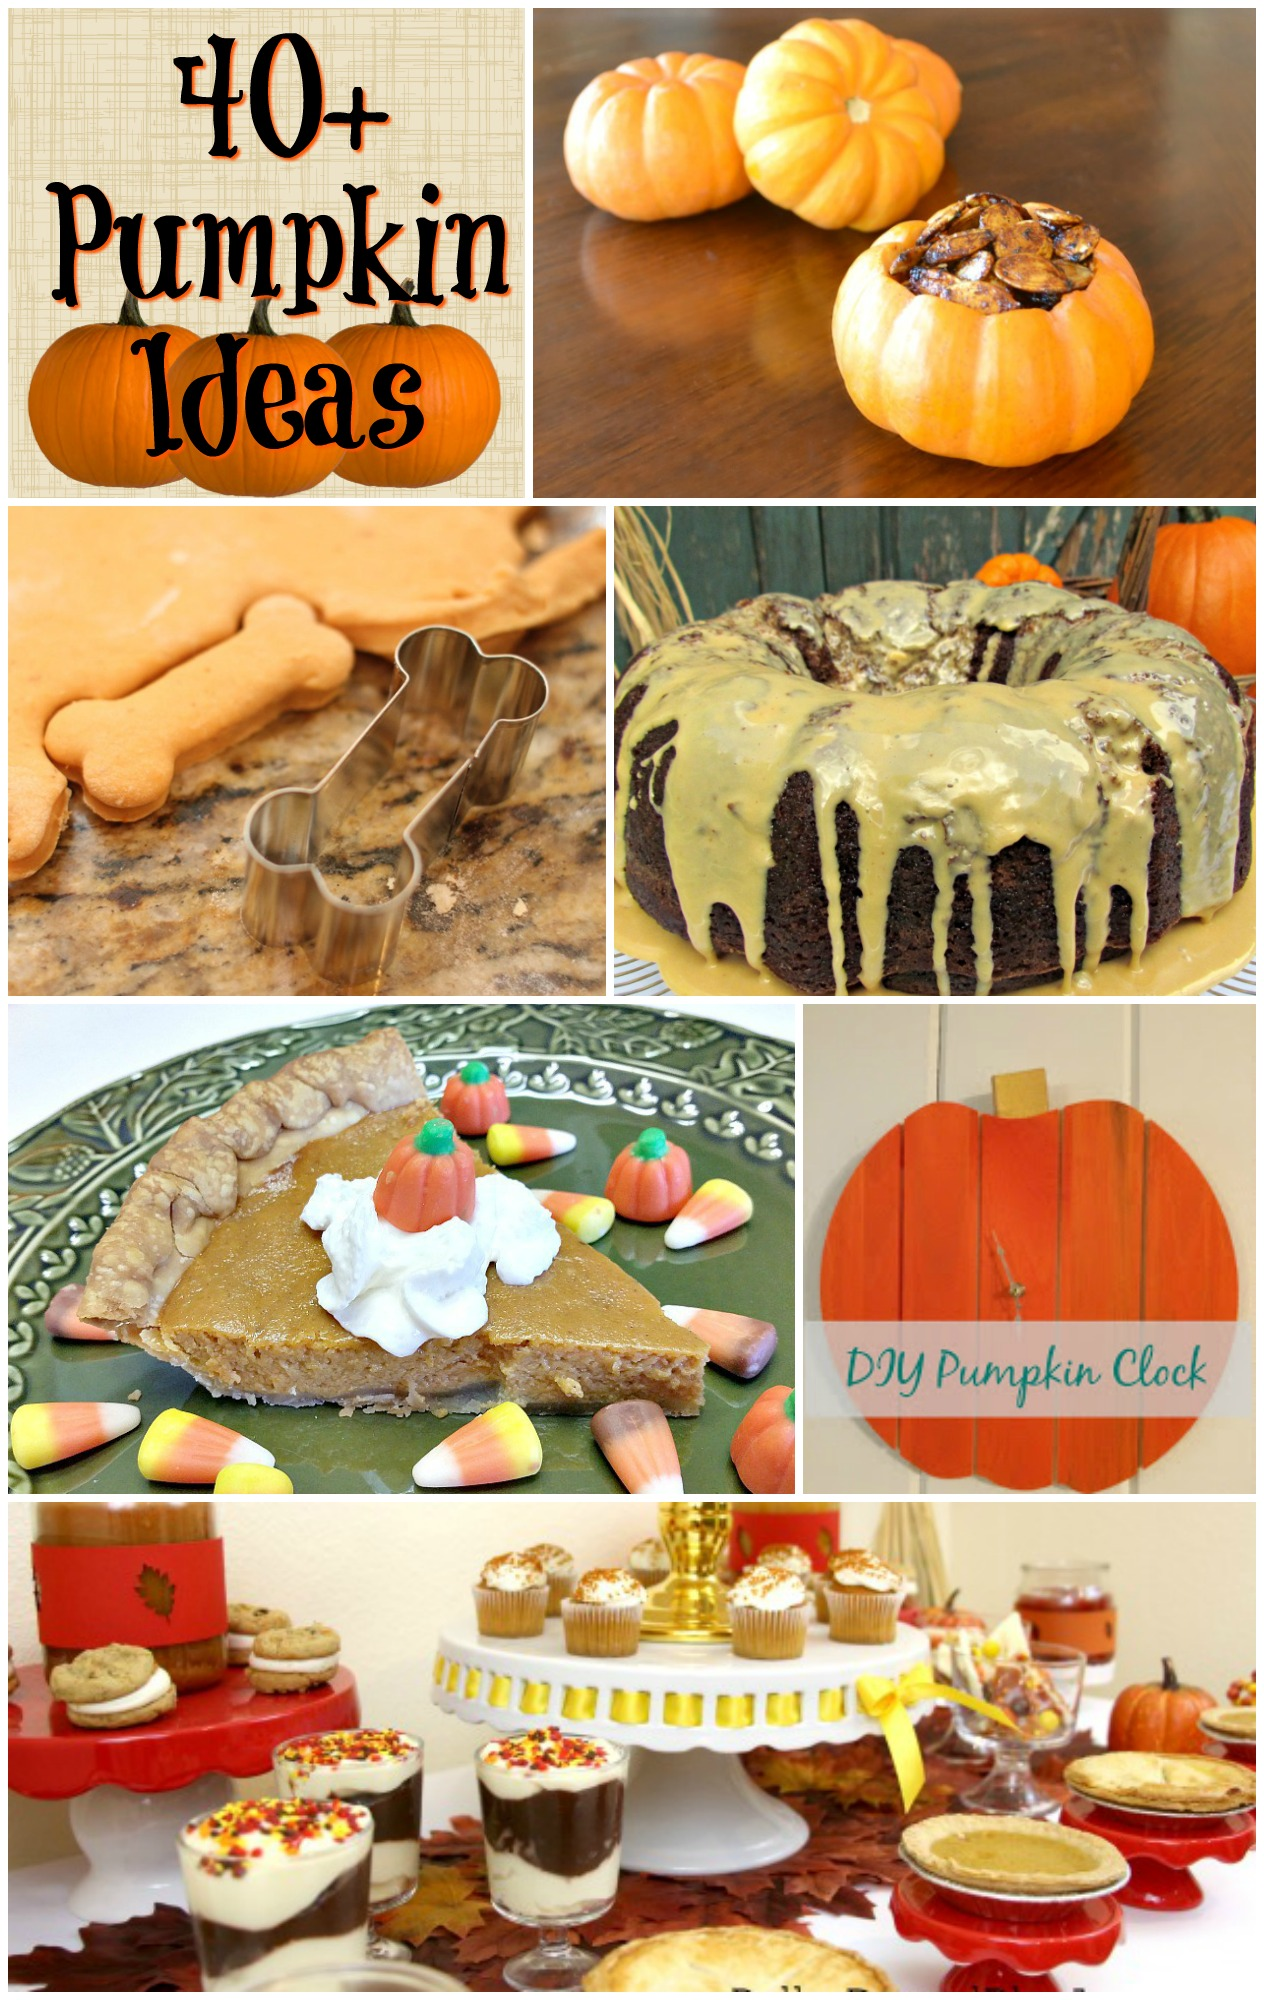 40+ ideas to do with Pumpkins!